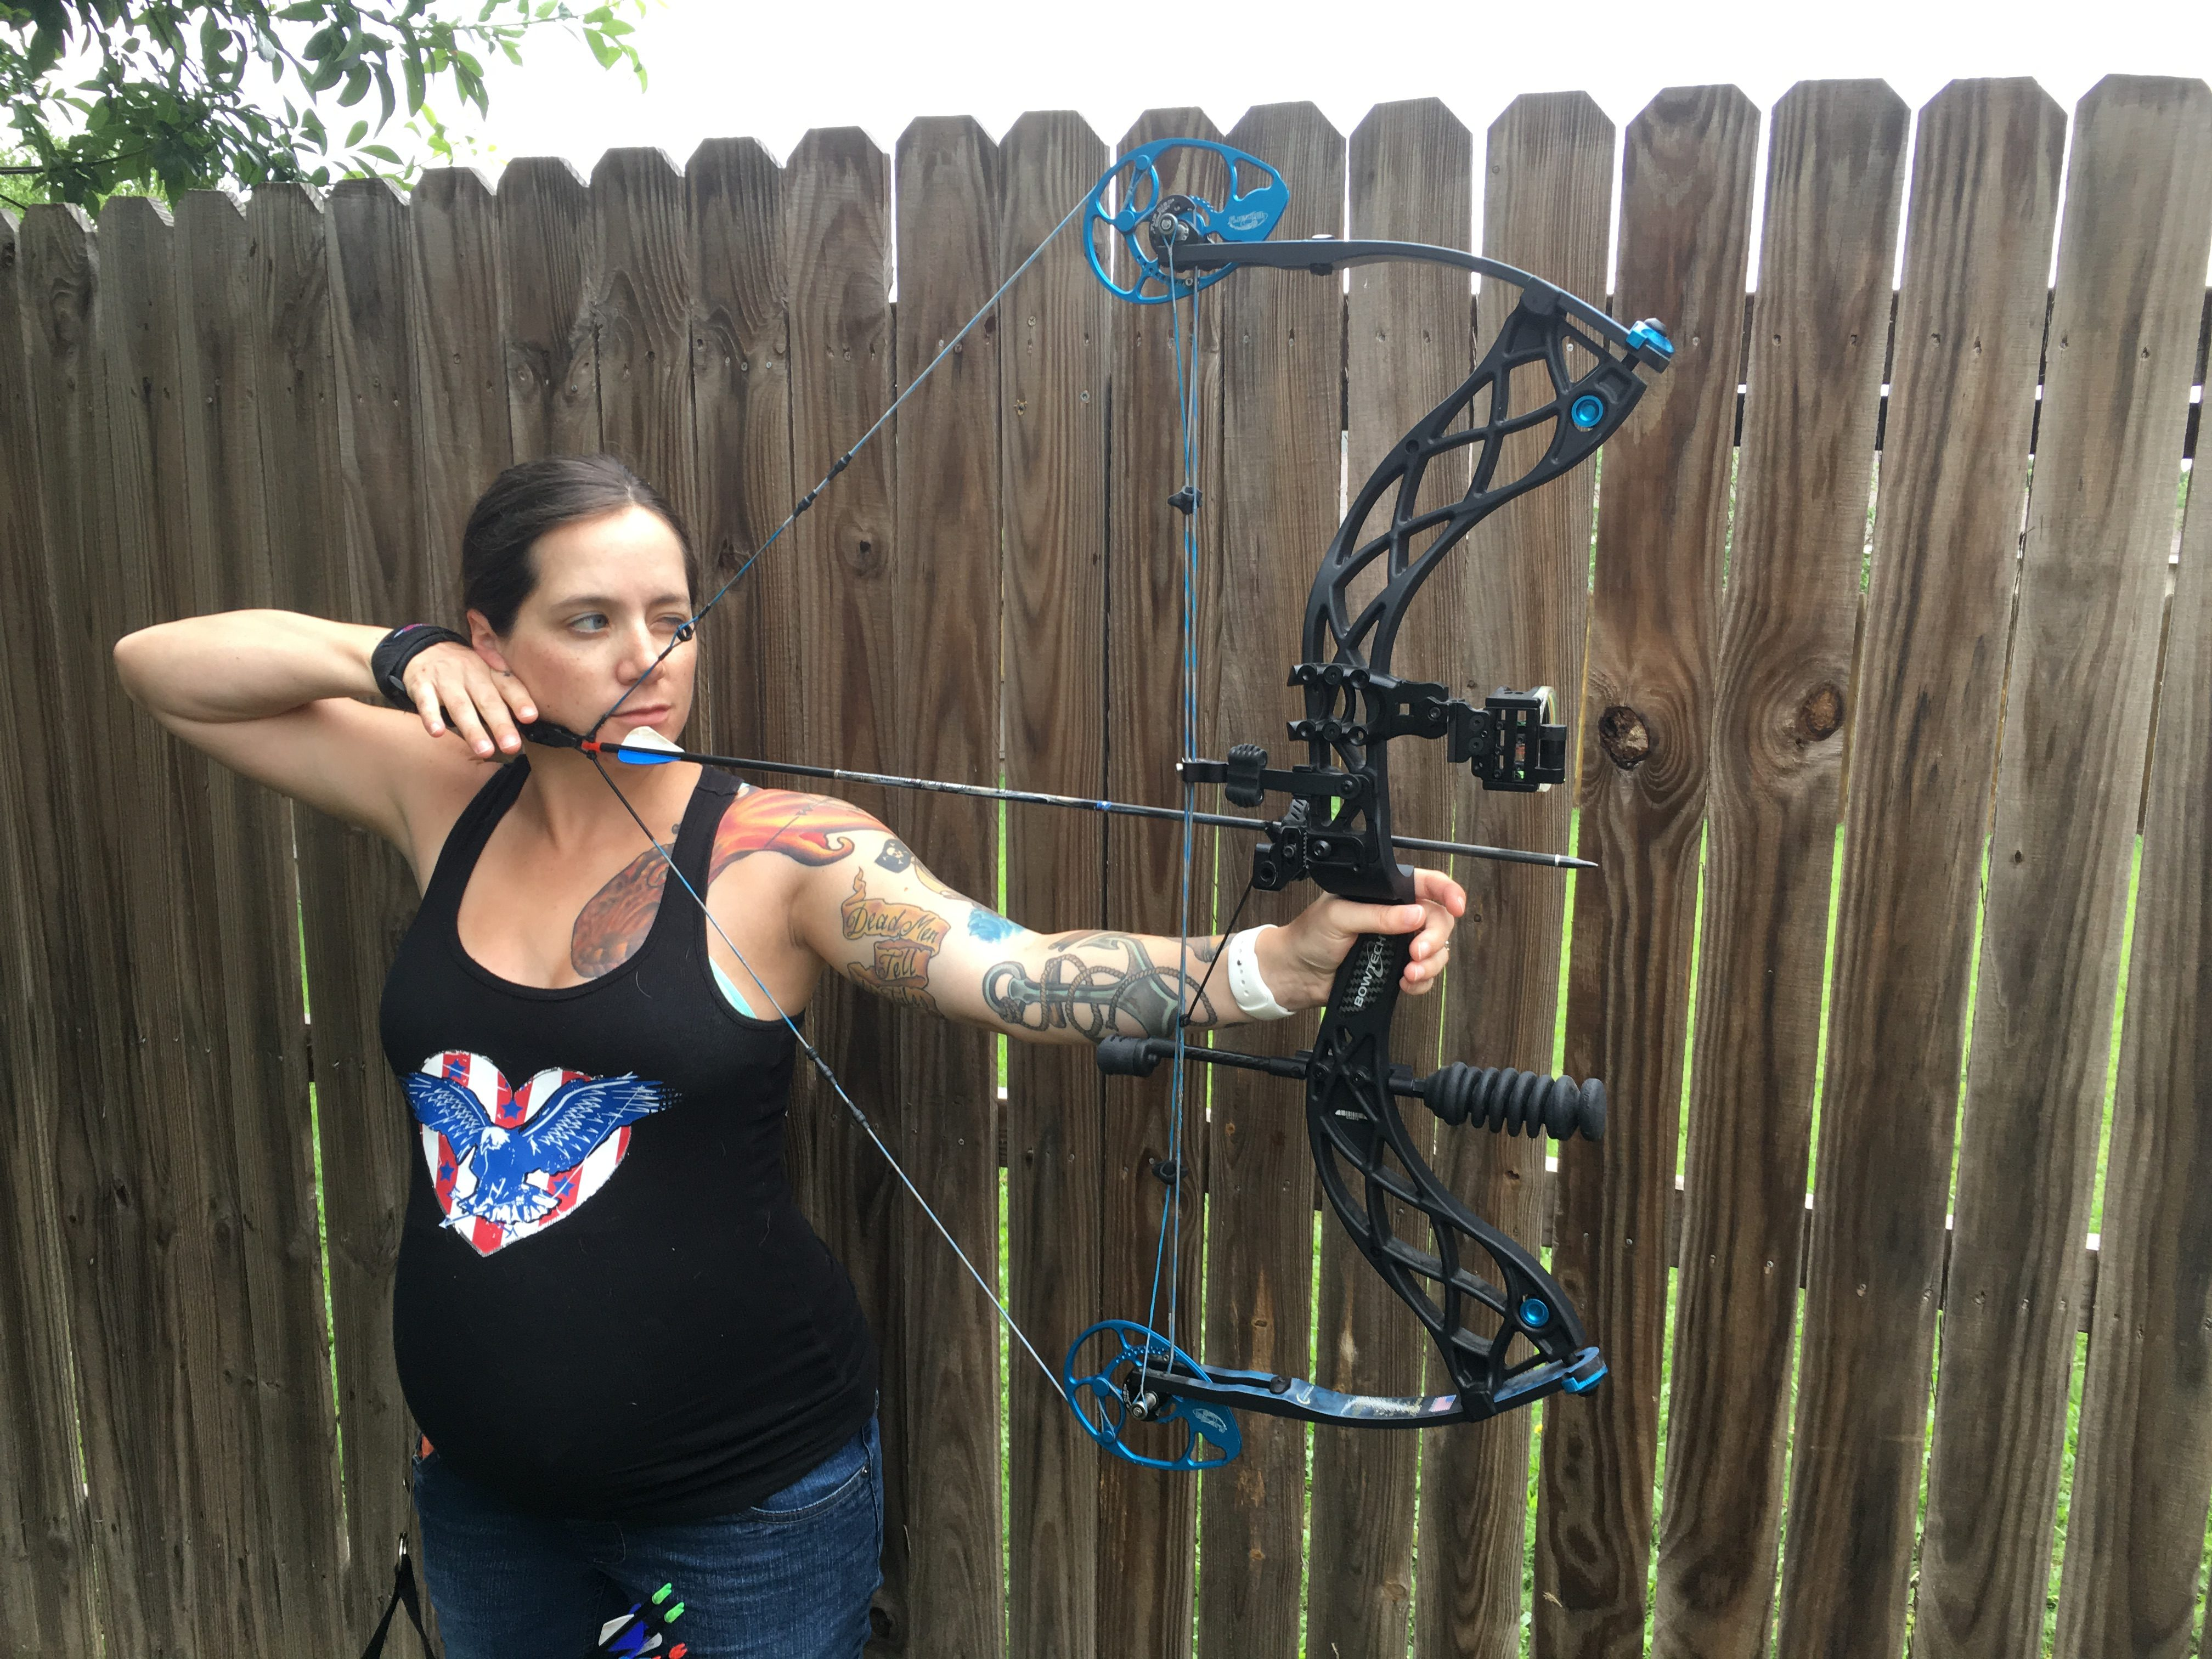 How To Improve Accuracy with Your Bow